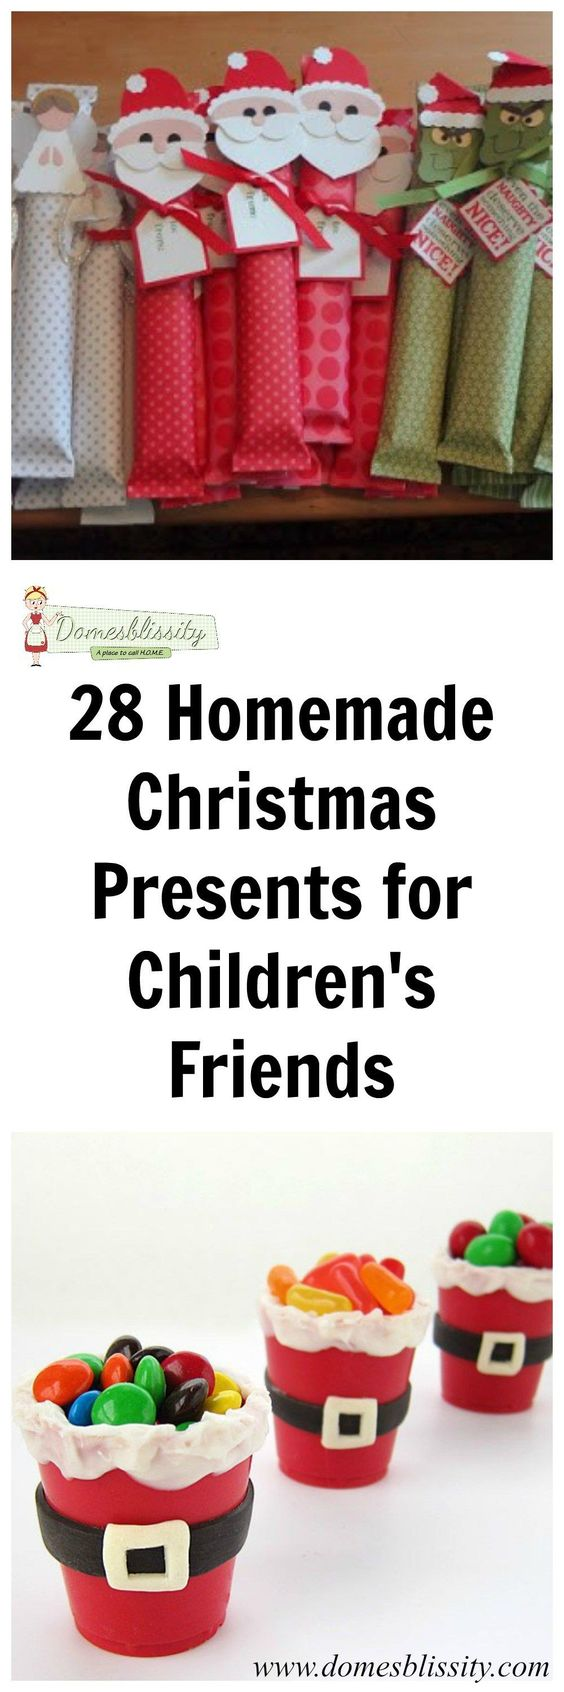 Last week I shared with you 21 homemade Christmas presents ...